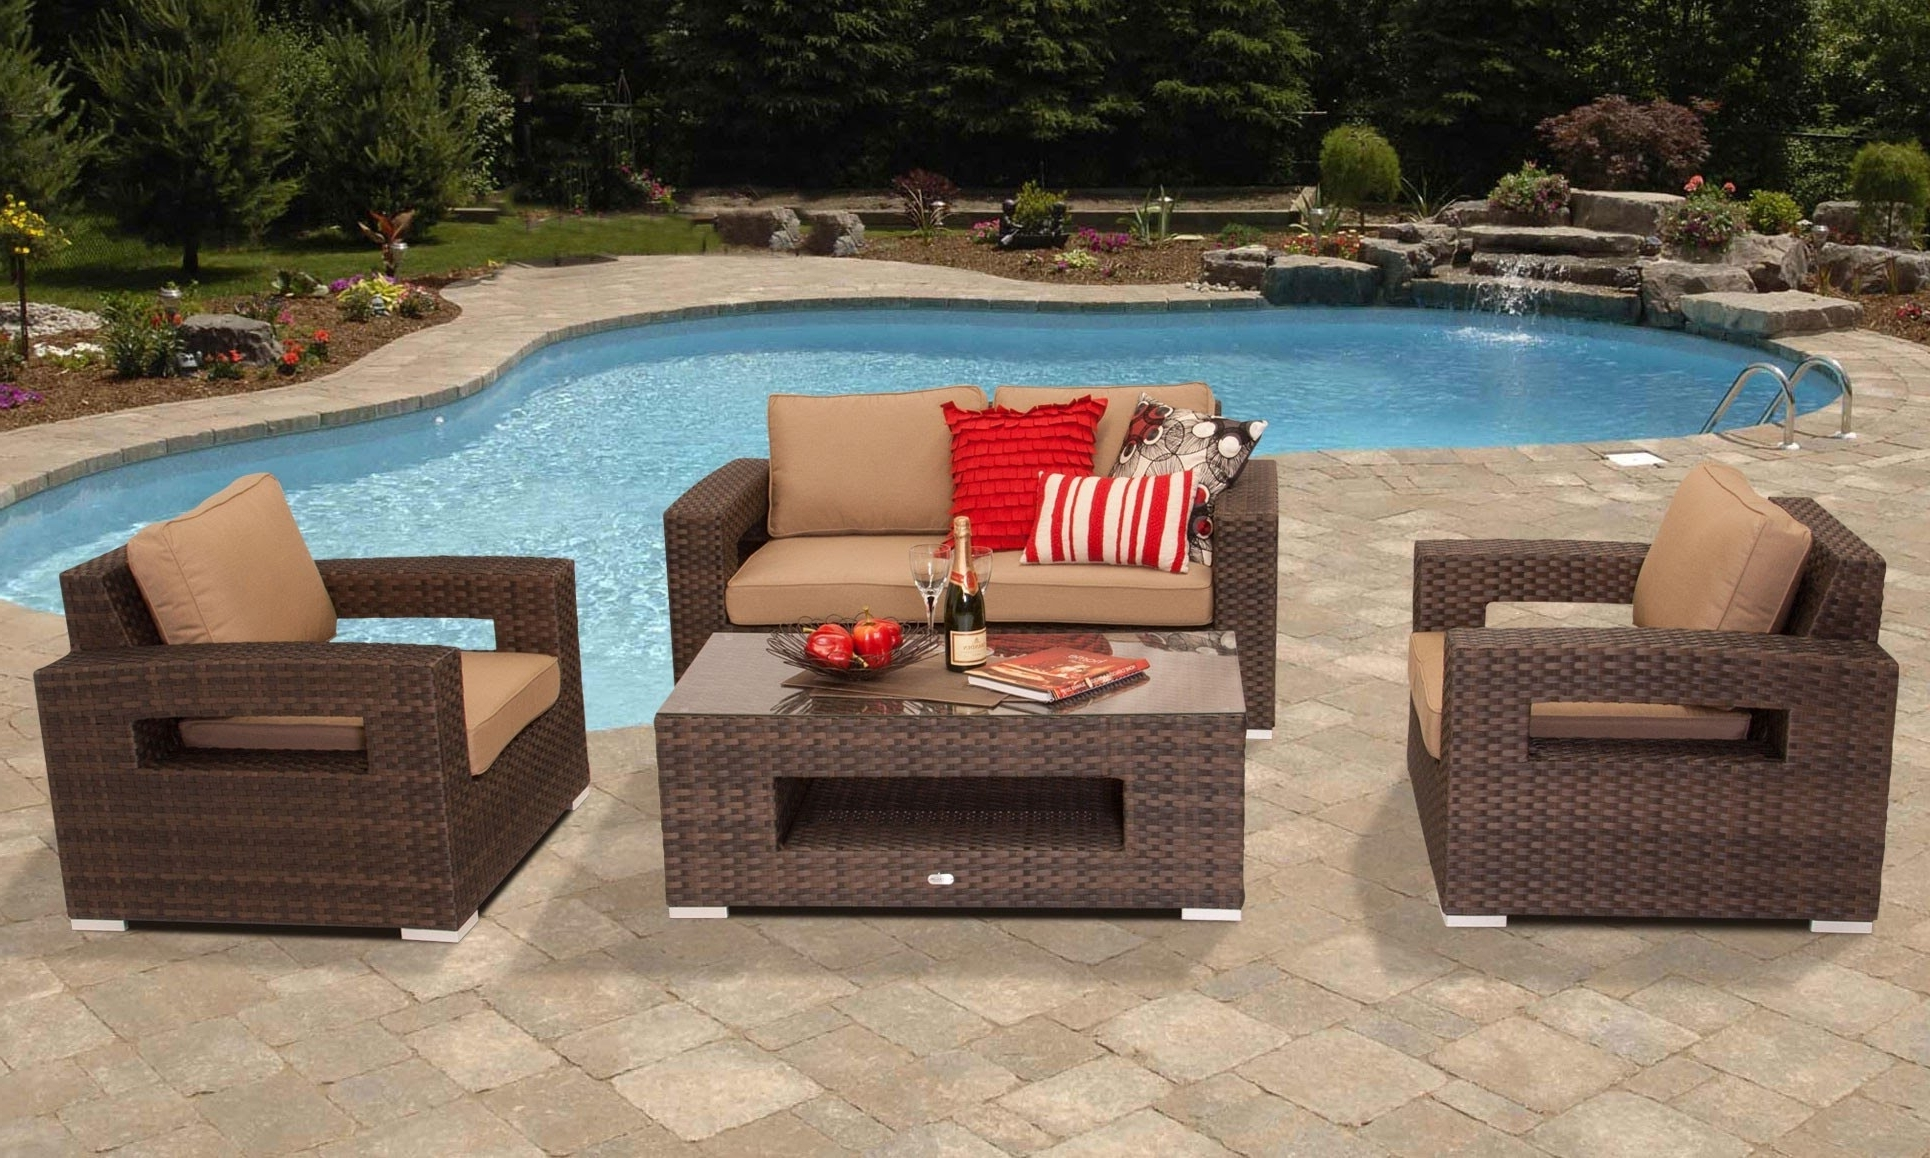 Cushions 5 Random 2 Sunbrella Patio Furniture Cushions For Well Known Sunbrella Patio Conversation Sets (View 10 of 15)